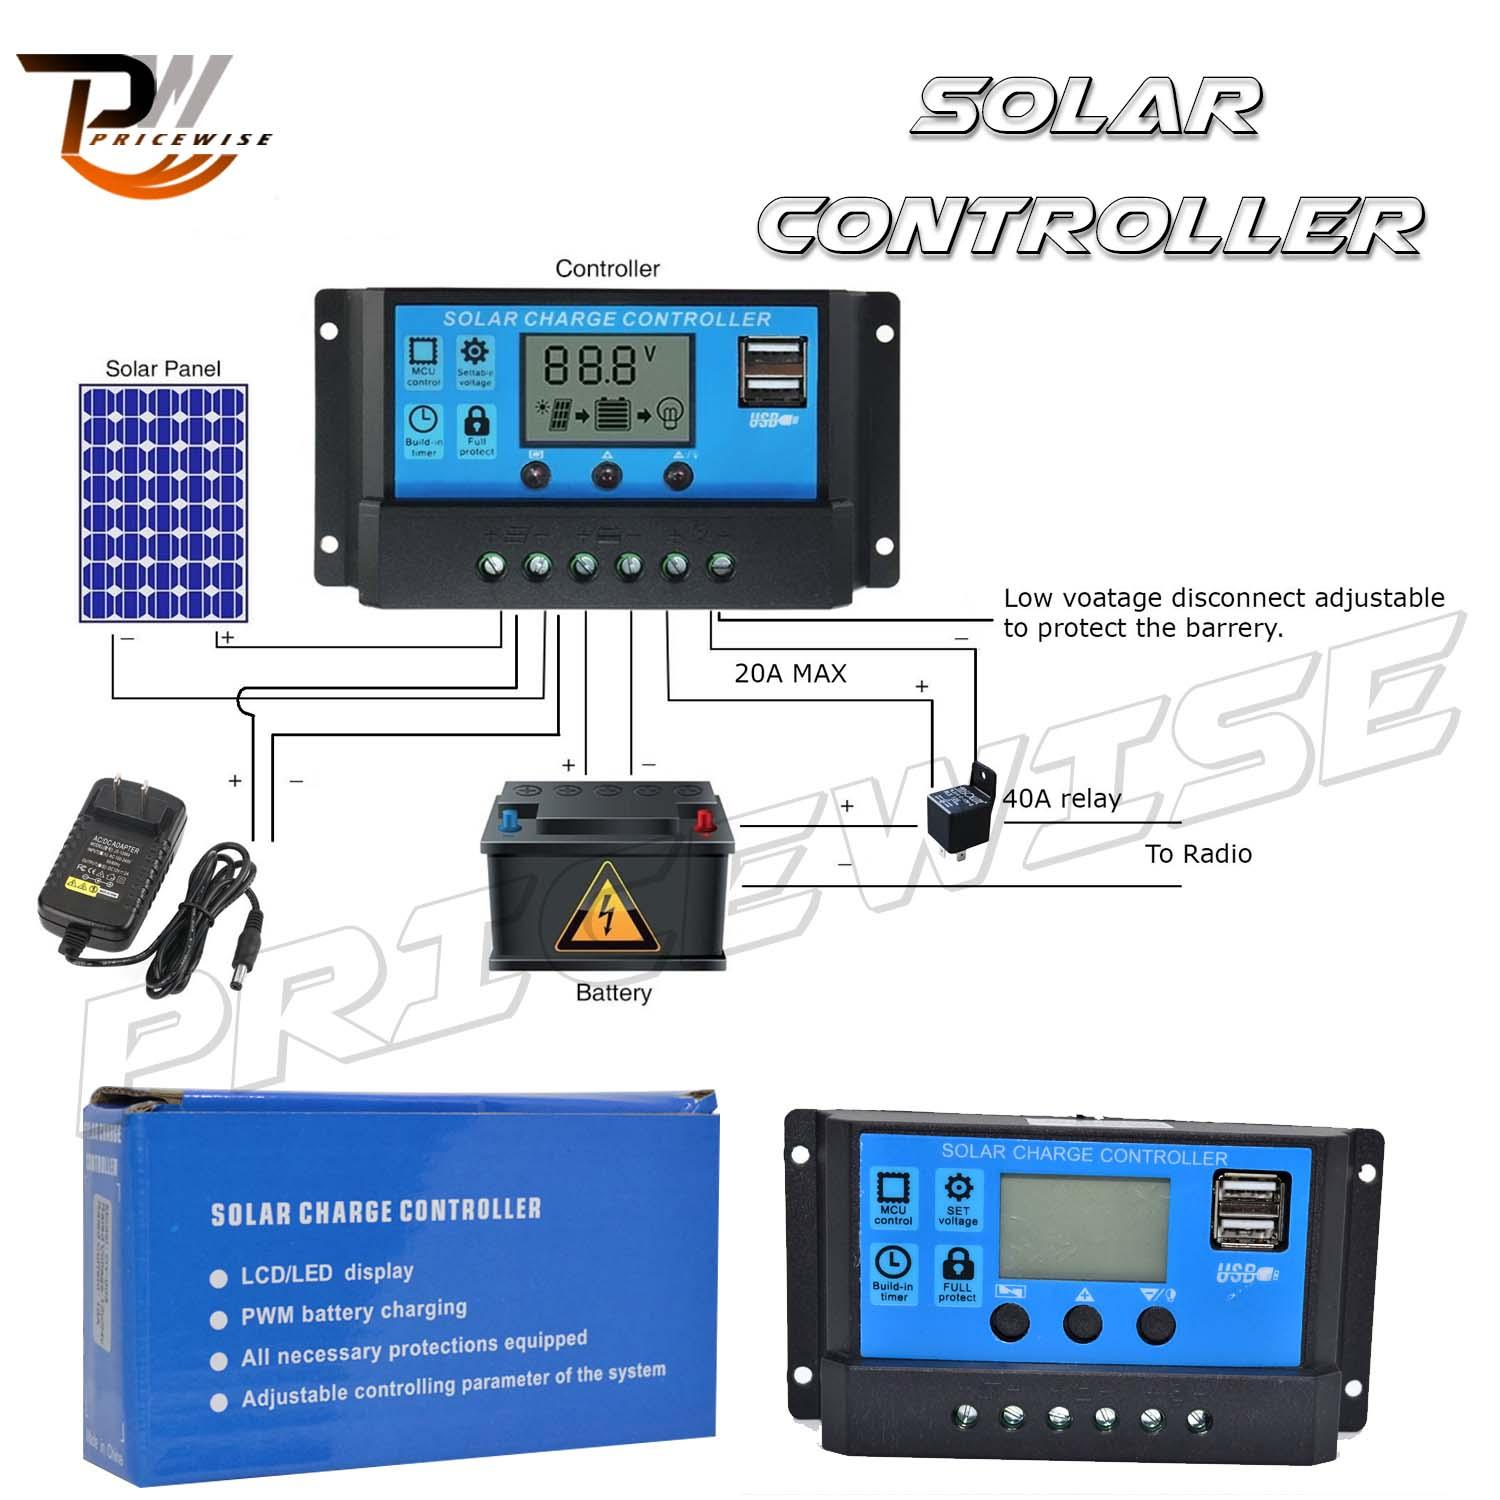 Solar Philippines Price List Led Light Set For Sale Lazada Christmas Lights Circuit 555 Aquarium Lighting Allpowers 10a Charger Controller Panel Battery Intelligent Regulator With Usb Port Display 12v